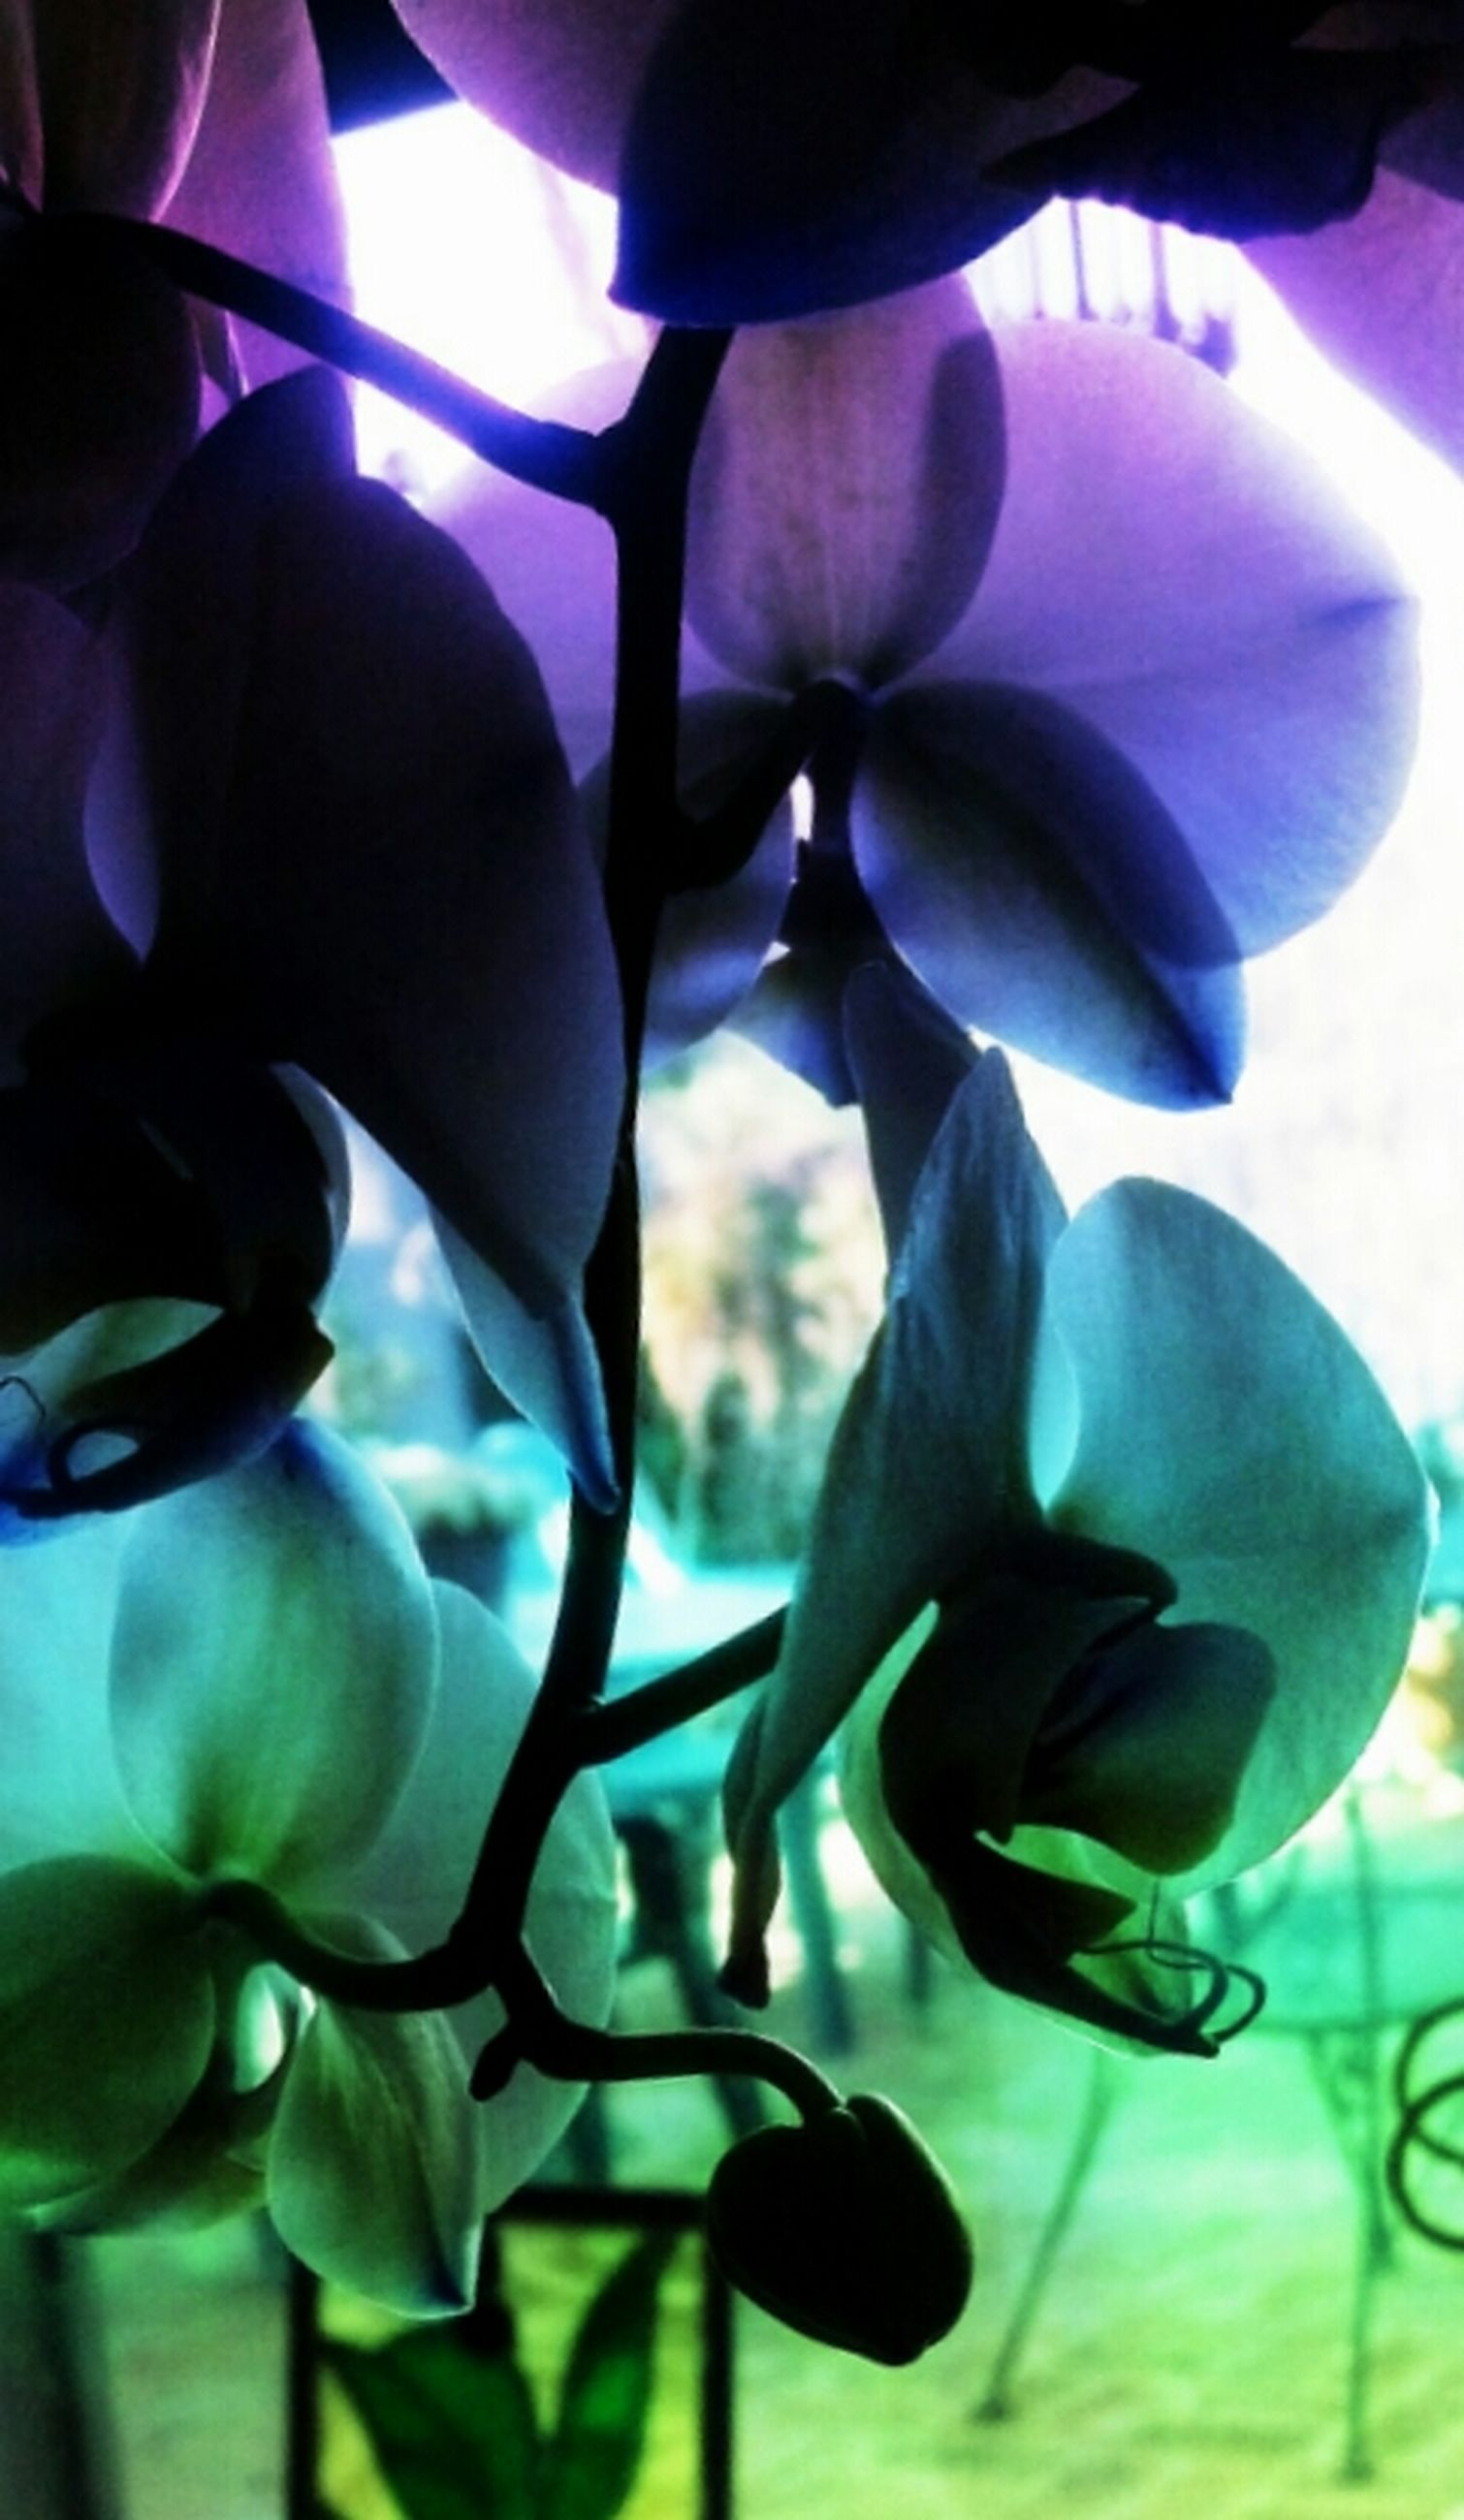 flower, growth, indoors, petal, close-up, fragility, plant, beauty in nature, freshness, nature, sunlight, flower head, no people, focus on foreground, purple, day, stem, orchid, leaf, selective focus